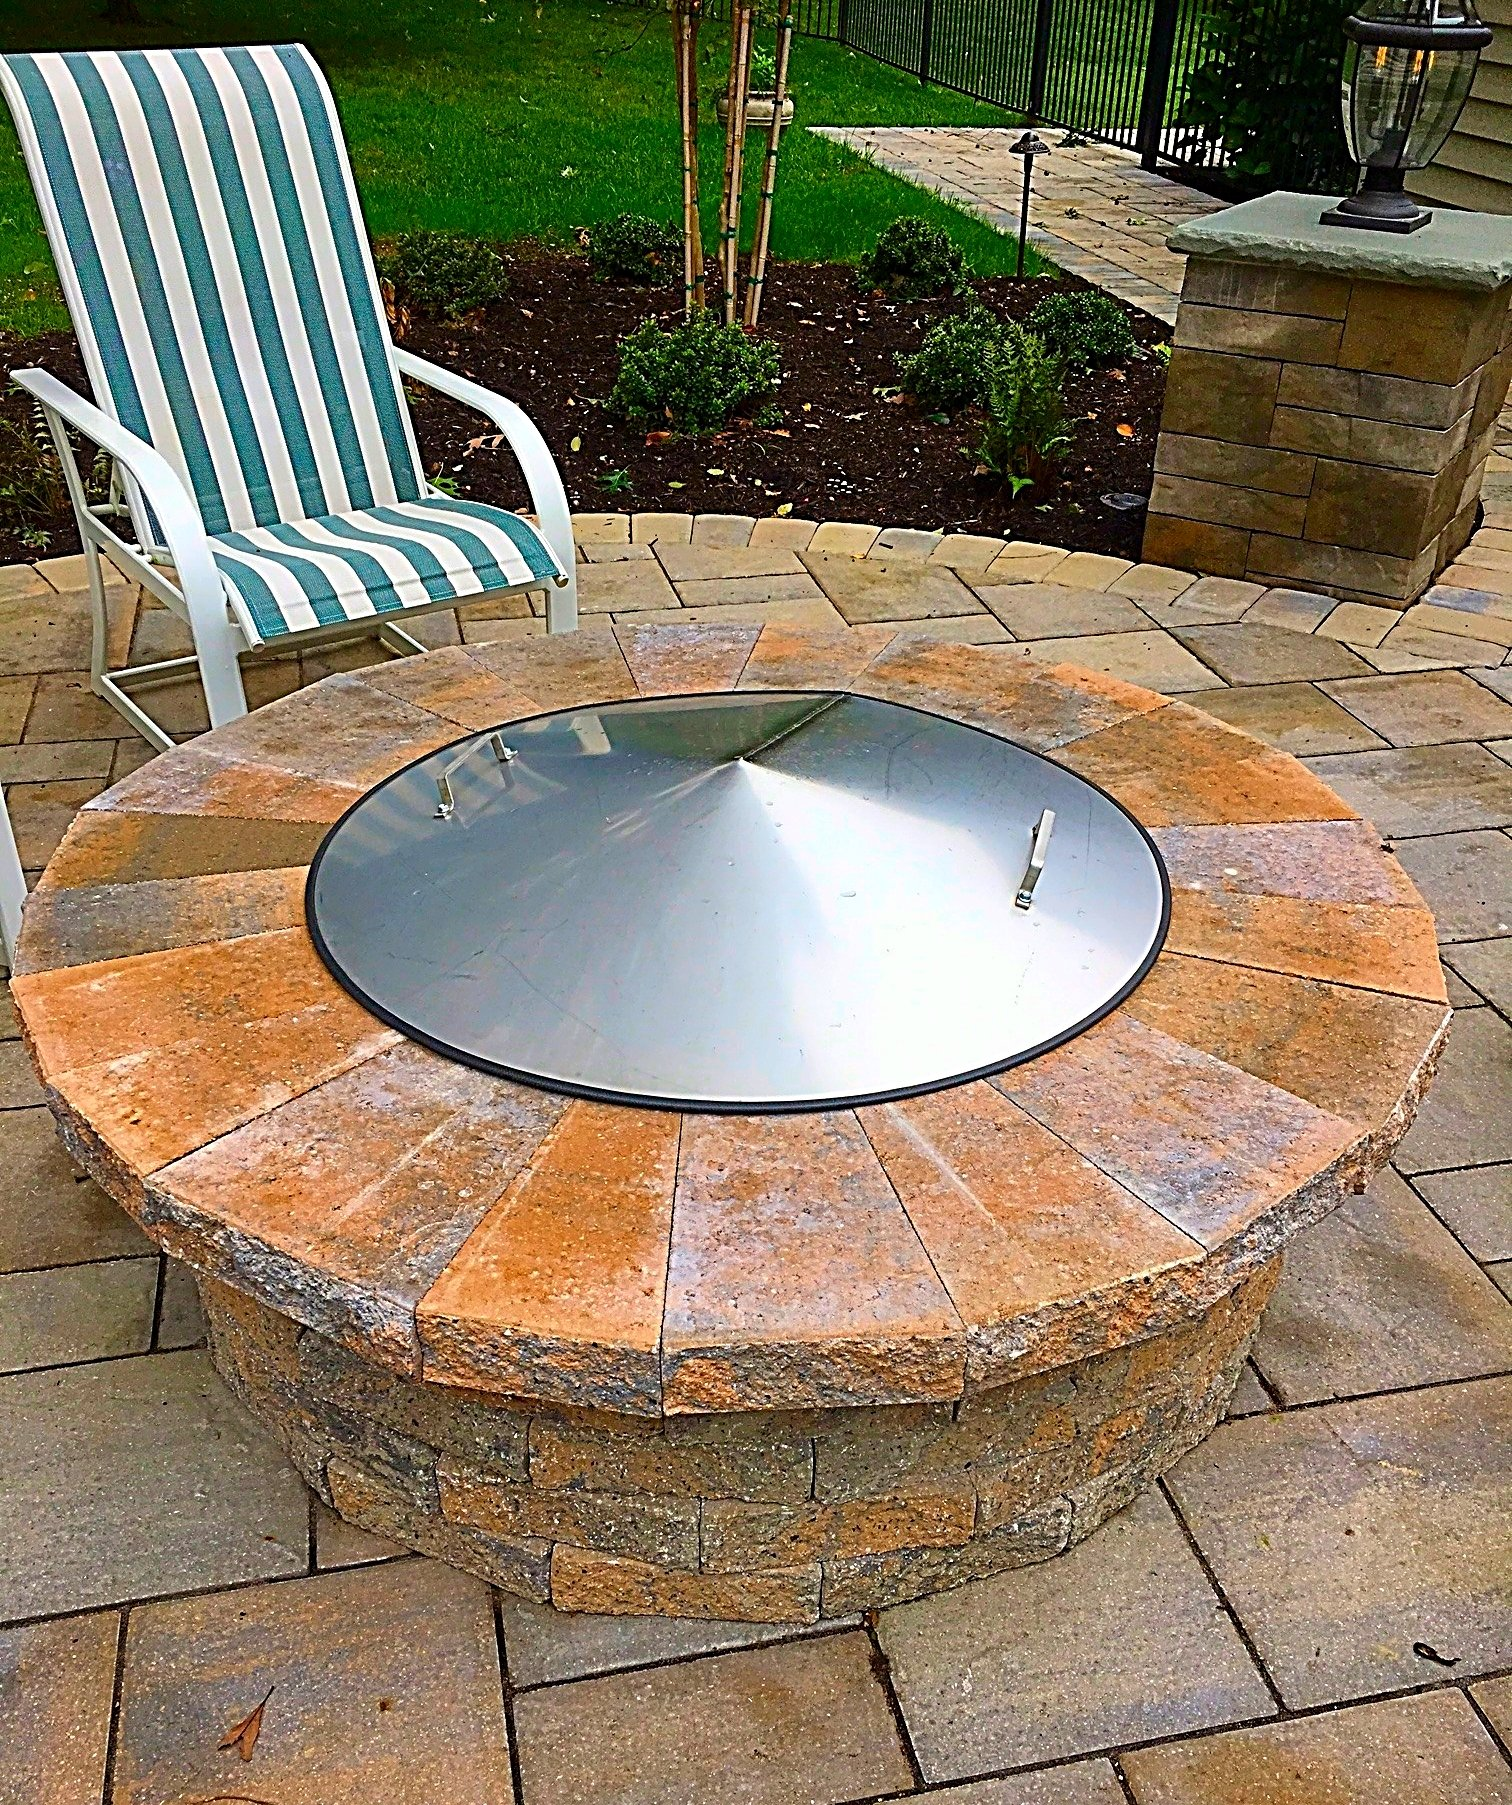 42 Diameter Round Stainless Steel Metal Fire Pit Spark Screen Cover Lid Top by Higley Fire Pit Covers